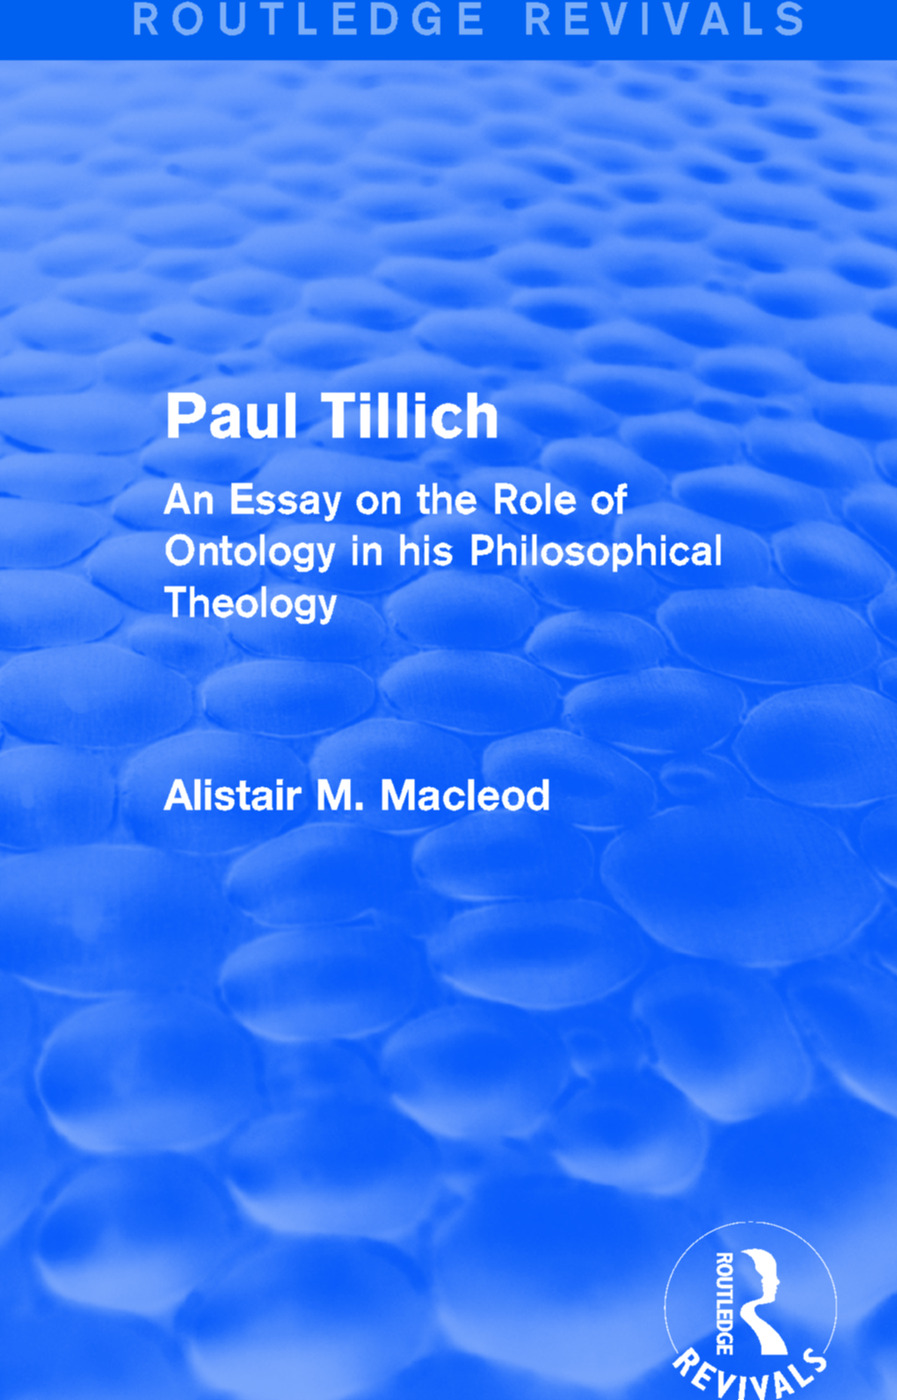 Routledge Revivals: Paul Tillich (1973): An Essay on the Role of Ontology in his Philosophical Theology book cover